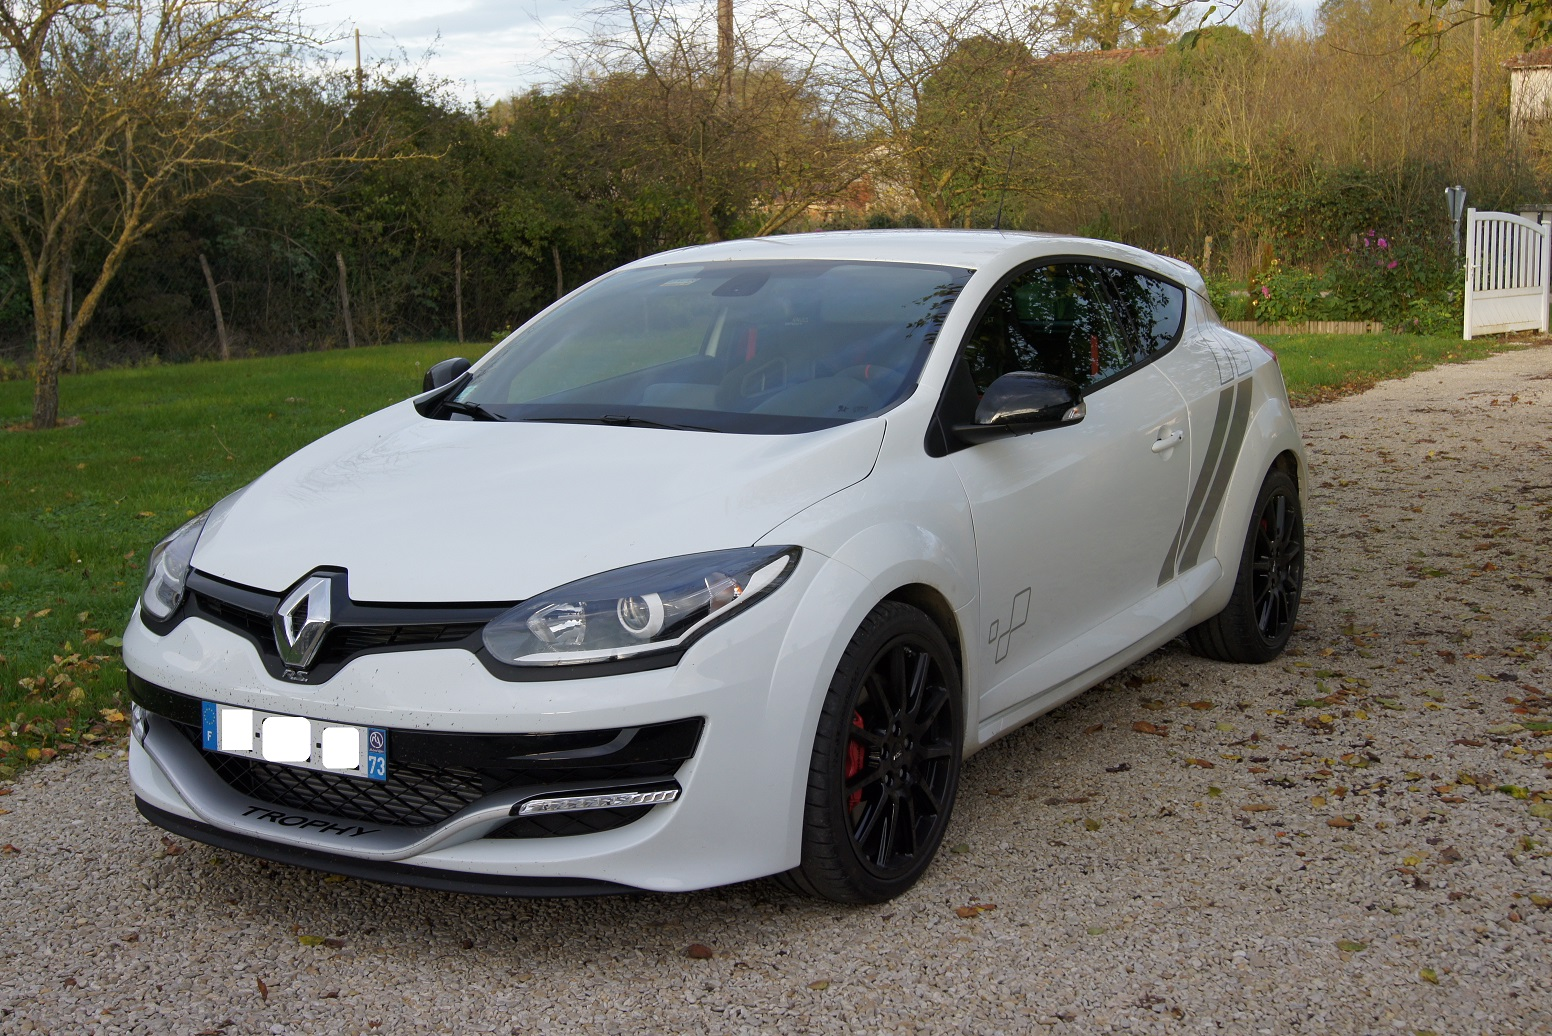 renault tuning club view topic chat megane iii rs 250 265 275 rbr7 8 trophy r register. Black Bedroom Furniture Sets. Home Design Ideas